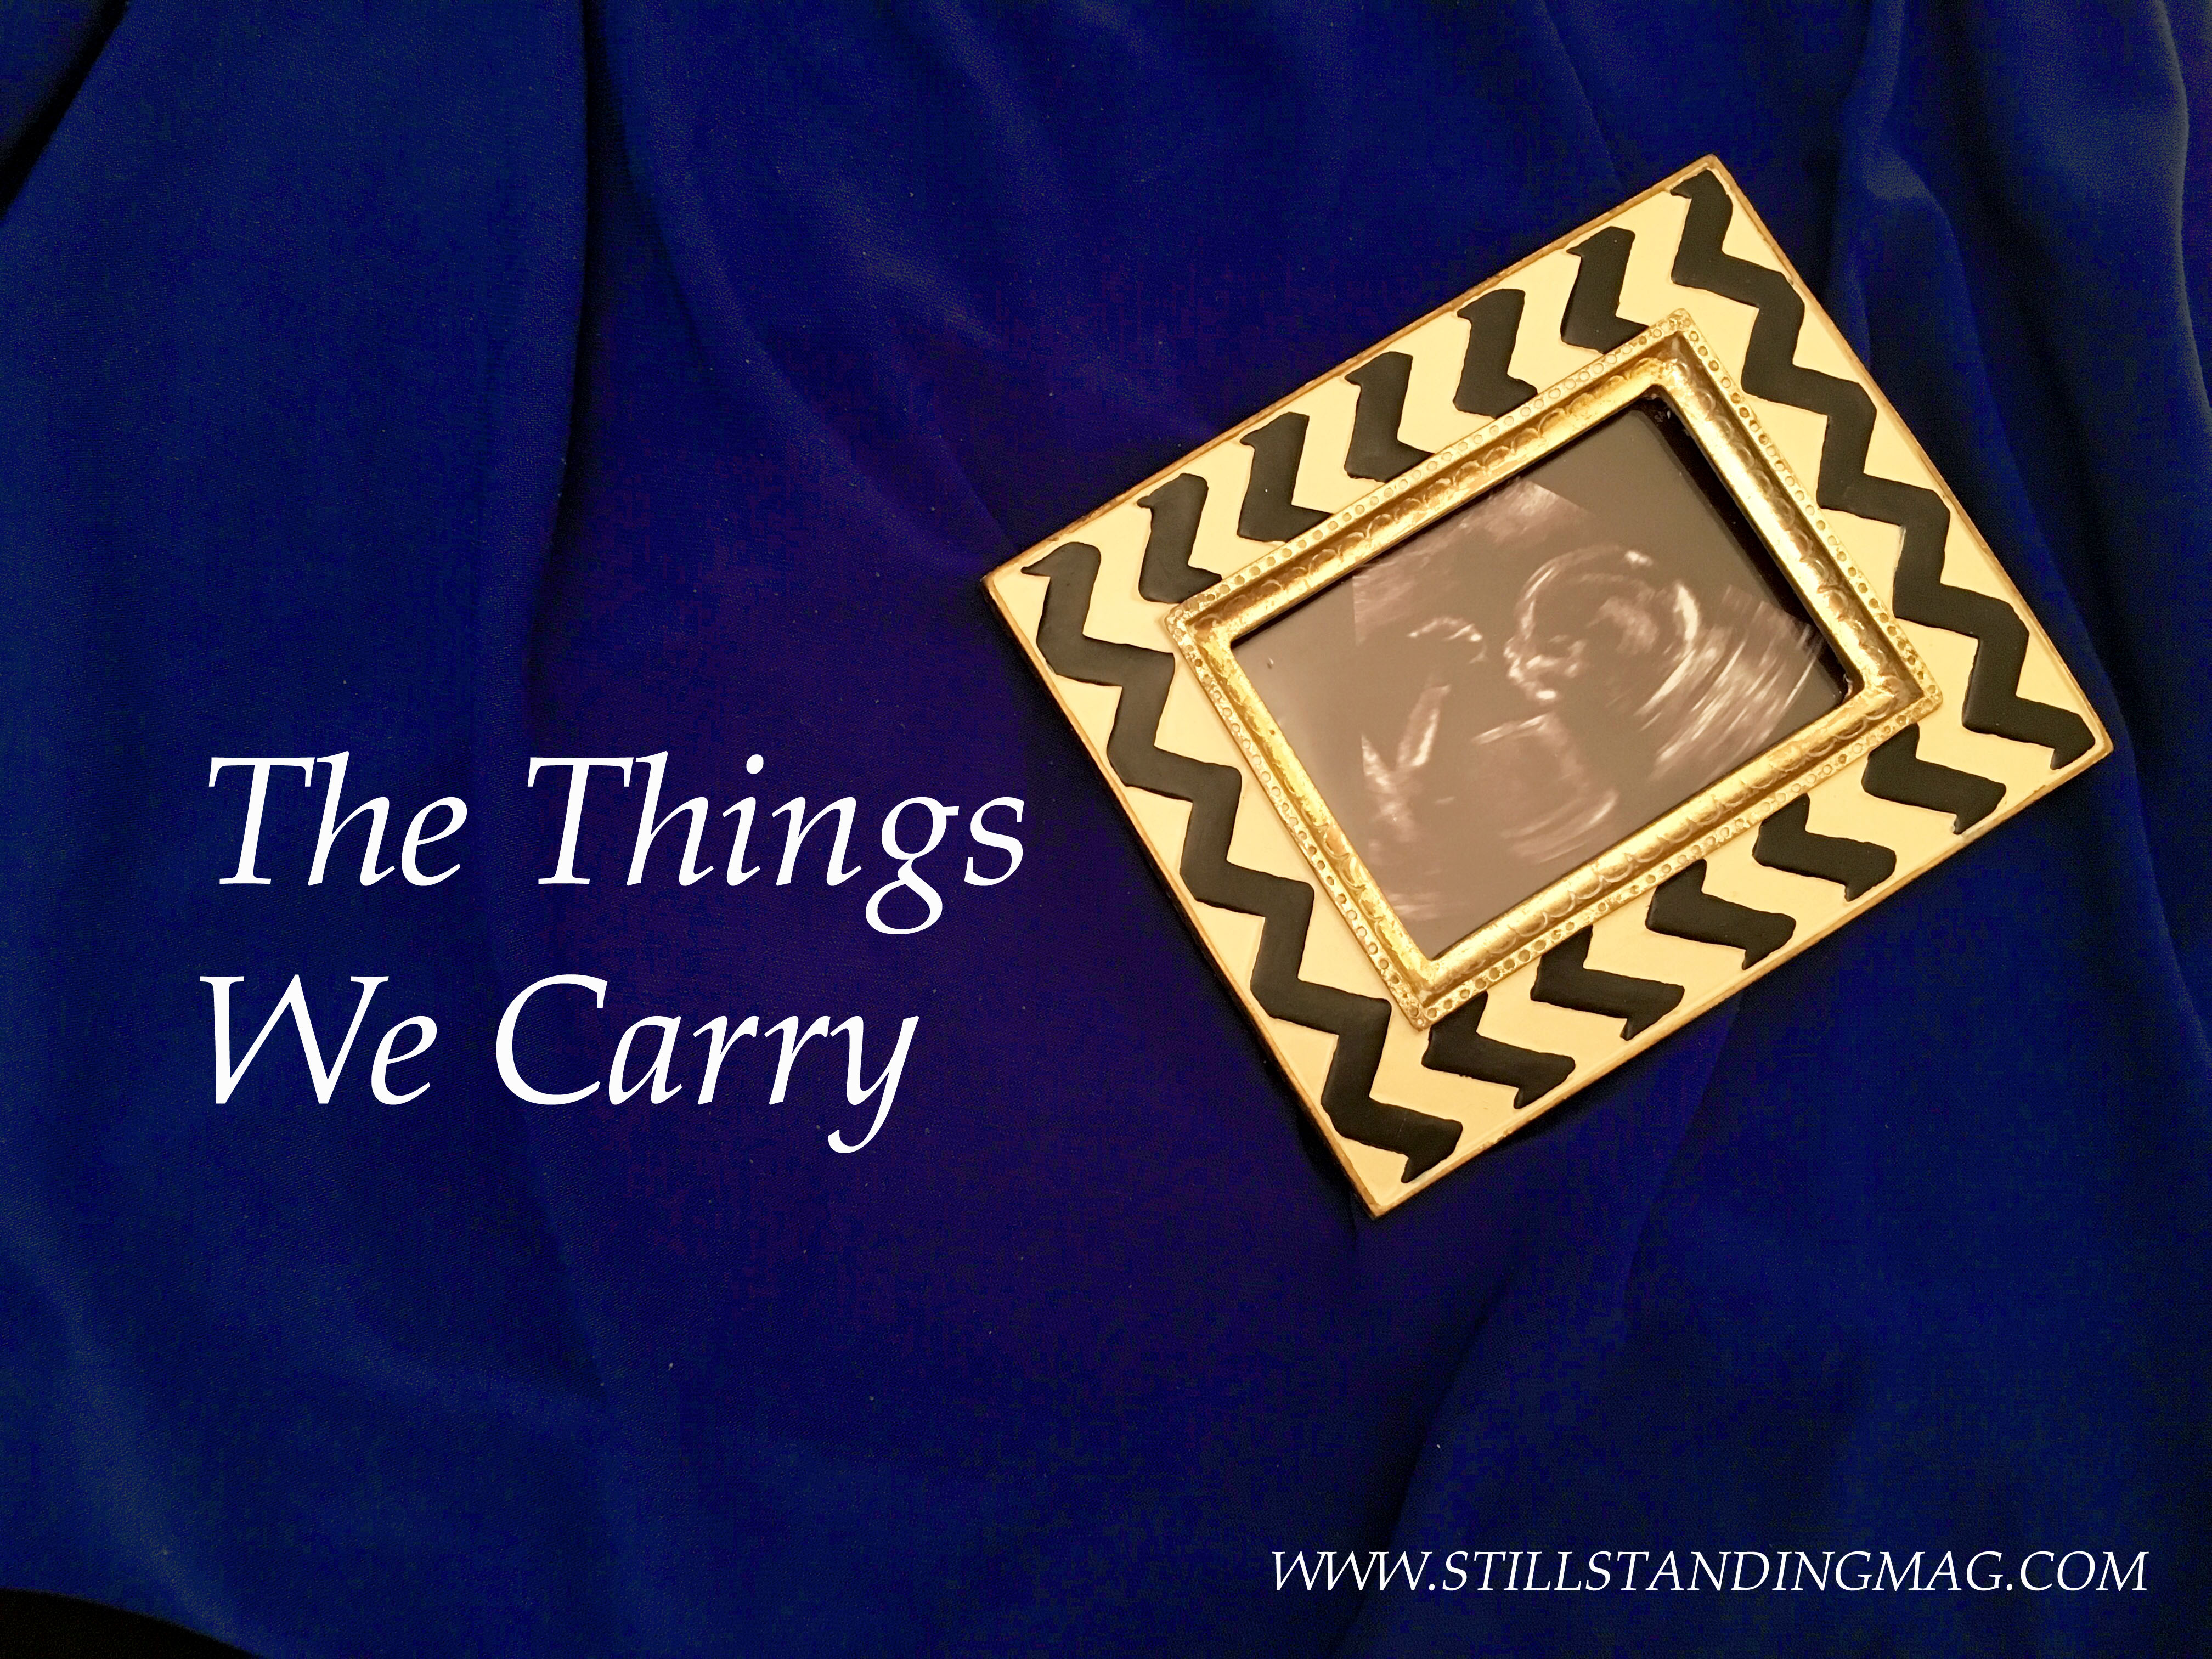 The Things We Carry